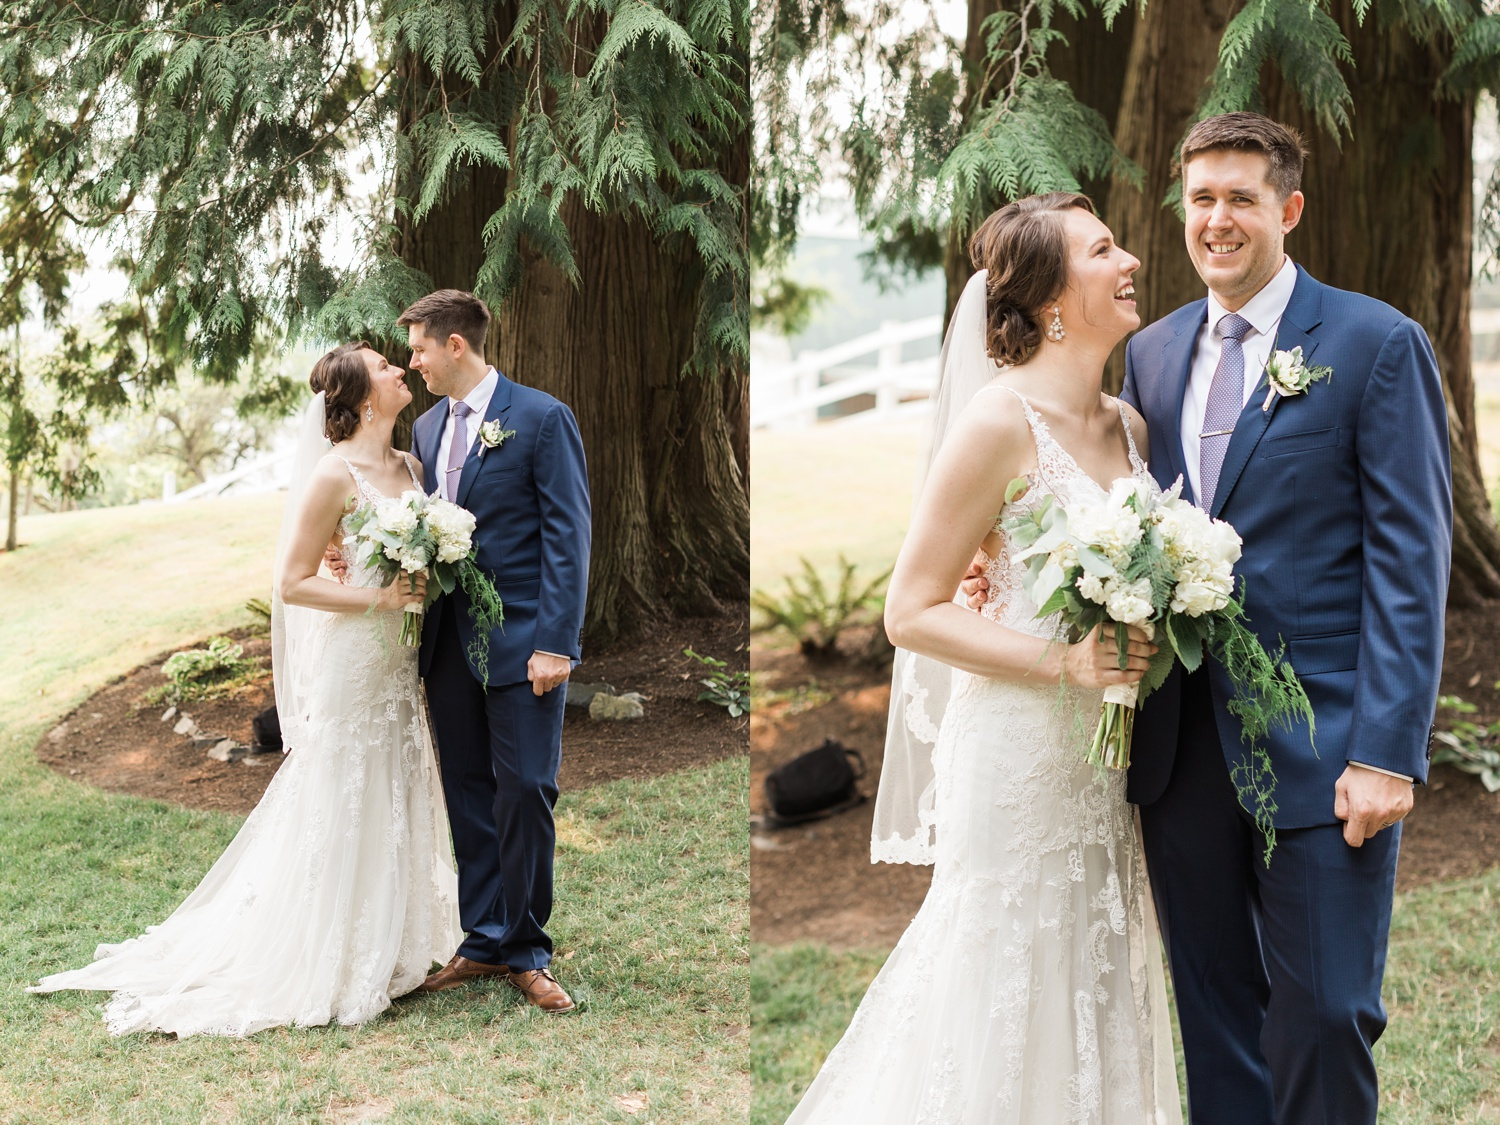 A bride and groom lovingly gaze at each other before their outdoor wedding at Chateau Lill in Woodinville, a wedding venue near Seattle, WA. | Joanna Monger Photography | Seattle & Snohomish Photographer